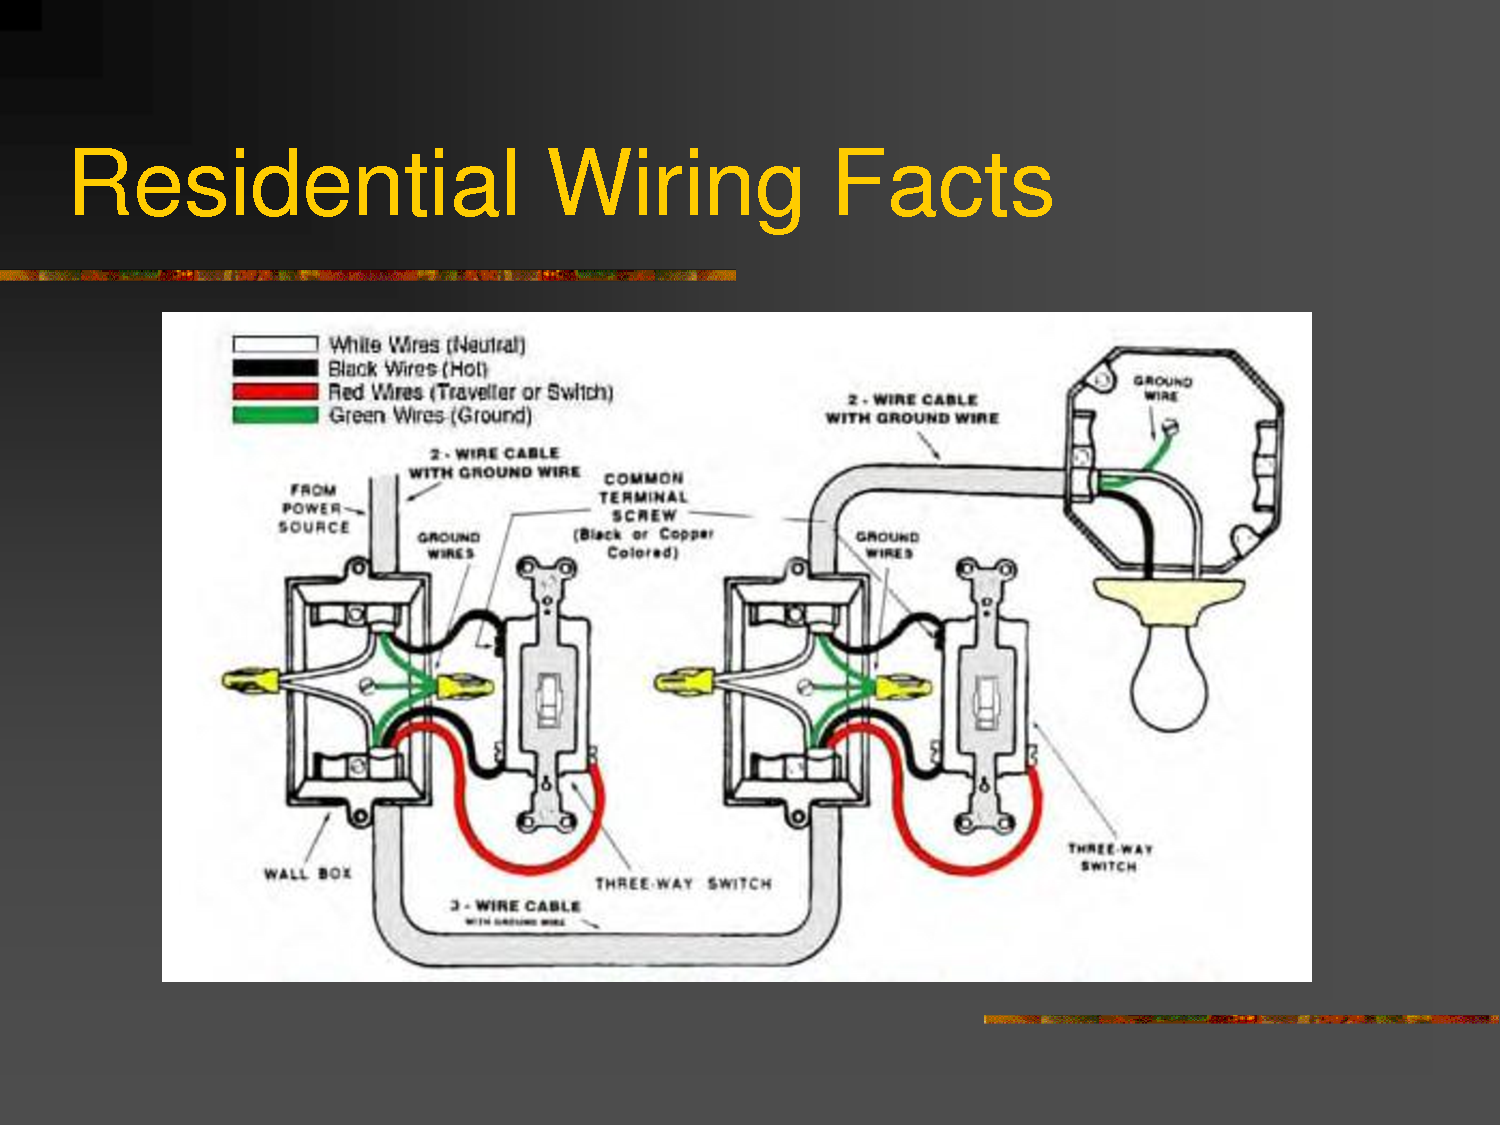 medium resolution of residential ac wiring diagram wiring diagram expert hvac ac wiring residential ac wiring